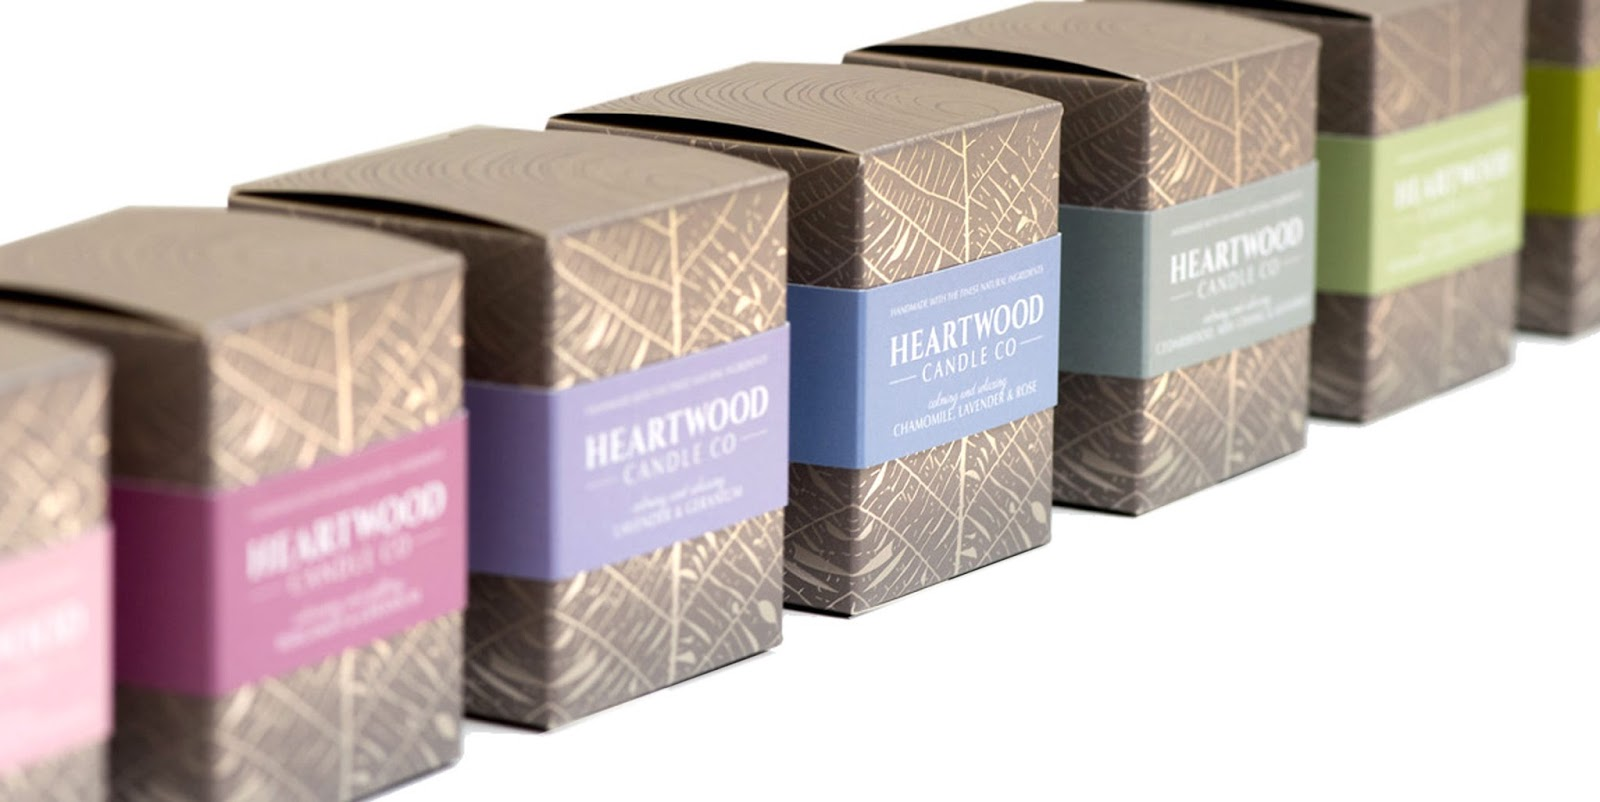 Home Design Company In Thailand Heartwood Candle On Packaging Of The World Creative